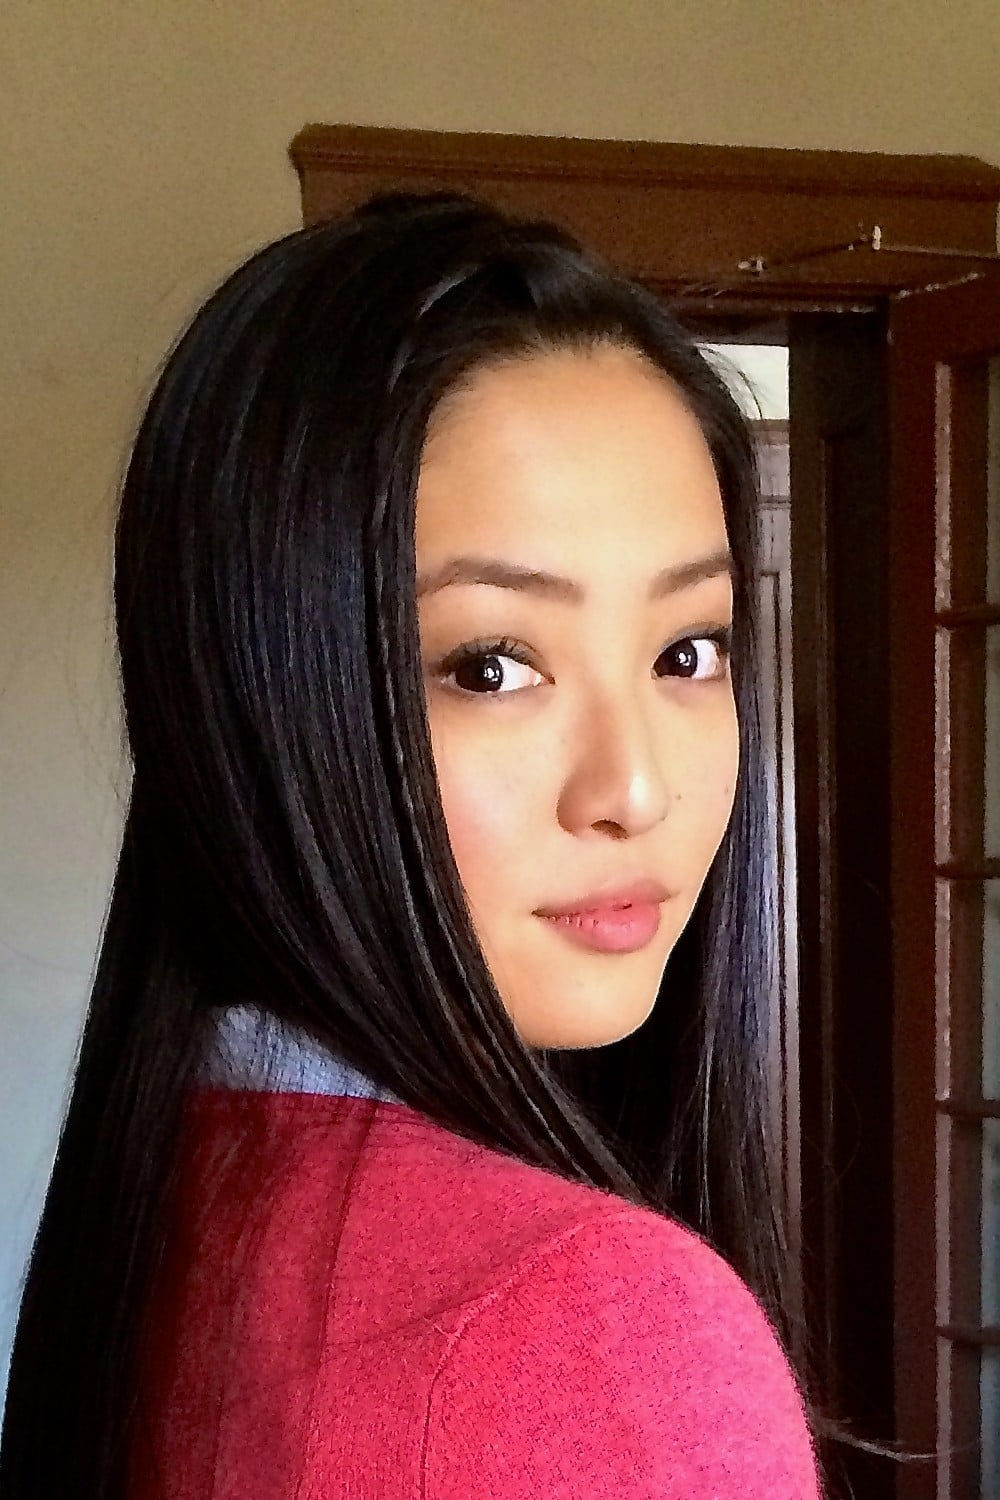 Chelsea Zhang Profile Images The Movie Database Tmdb Every movie and tv show chelsea zhang has acted in, directed, produced, or written and where to stream it online for free, with a subscription or for rent or purchase. chelsea zhang profile images the